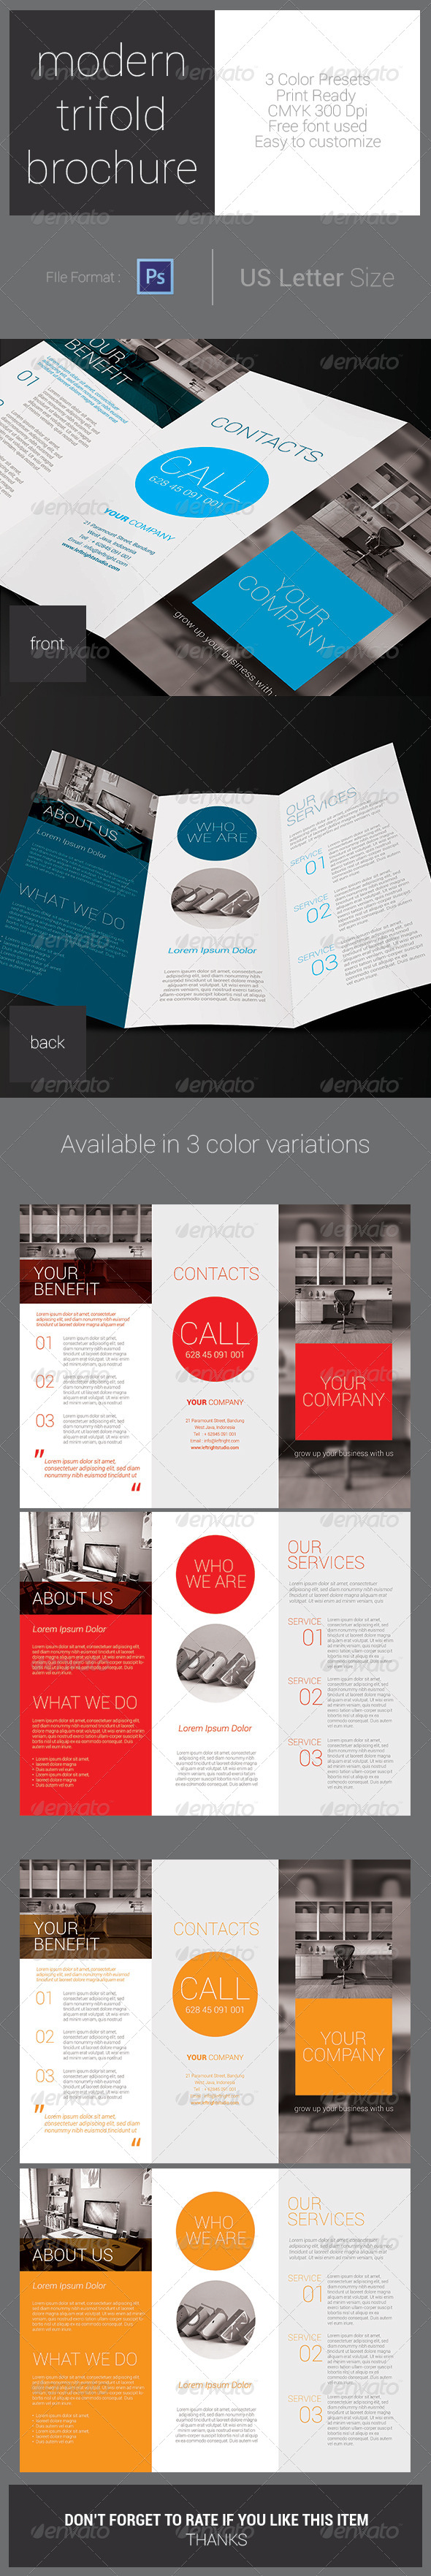 GraphicRiver Modern Trifold Brochure 7691583